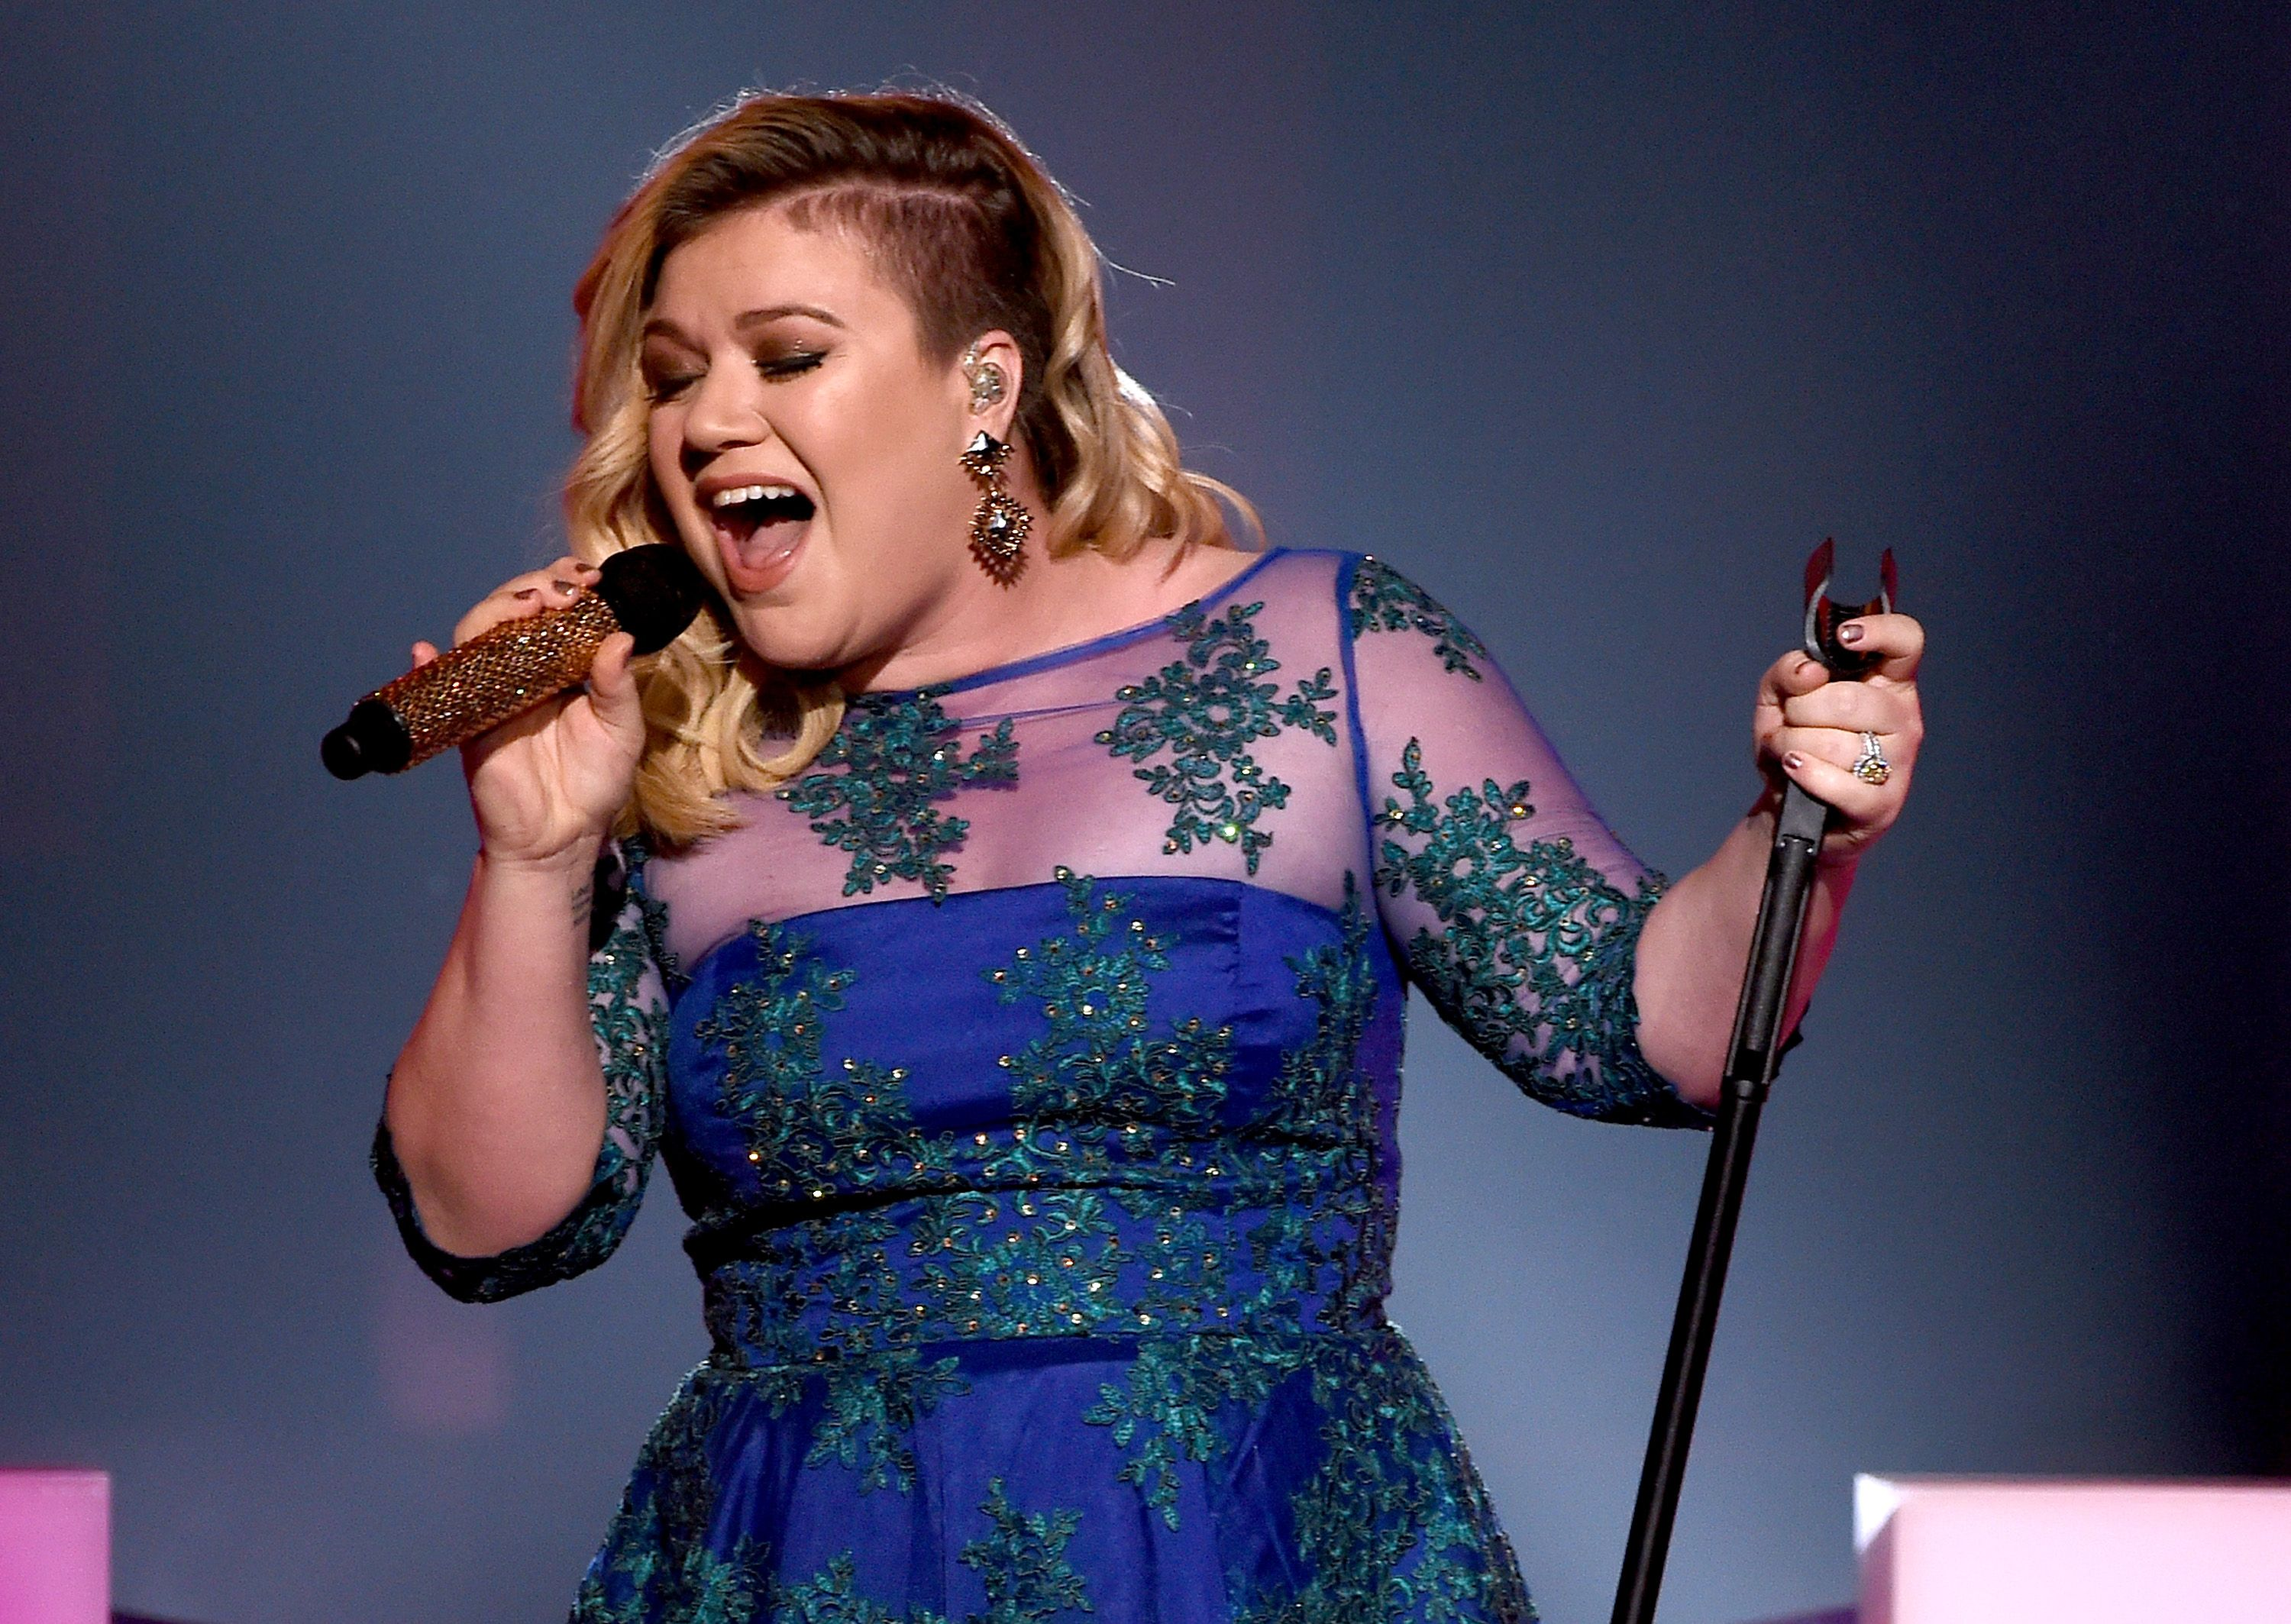 Kelly Clarkson at one of her performances / Getty Images